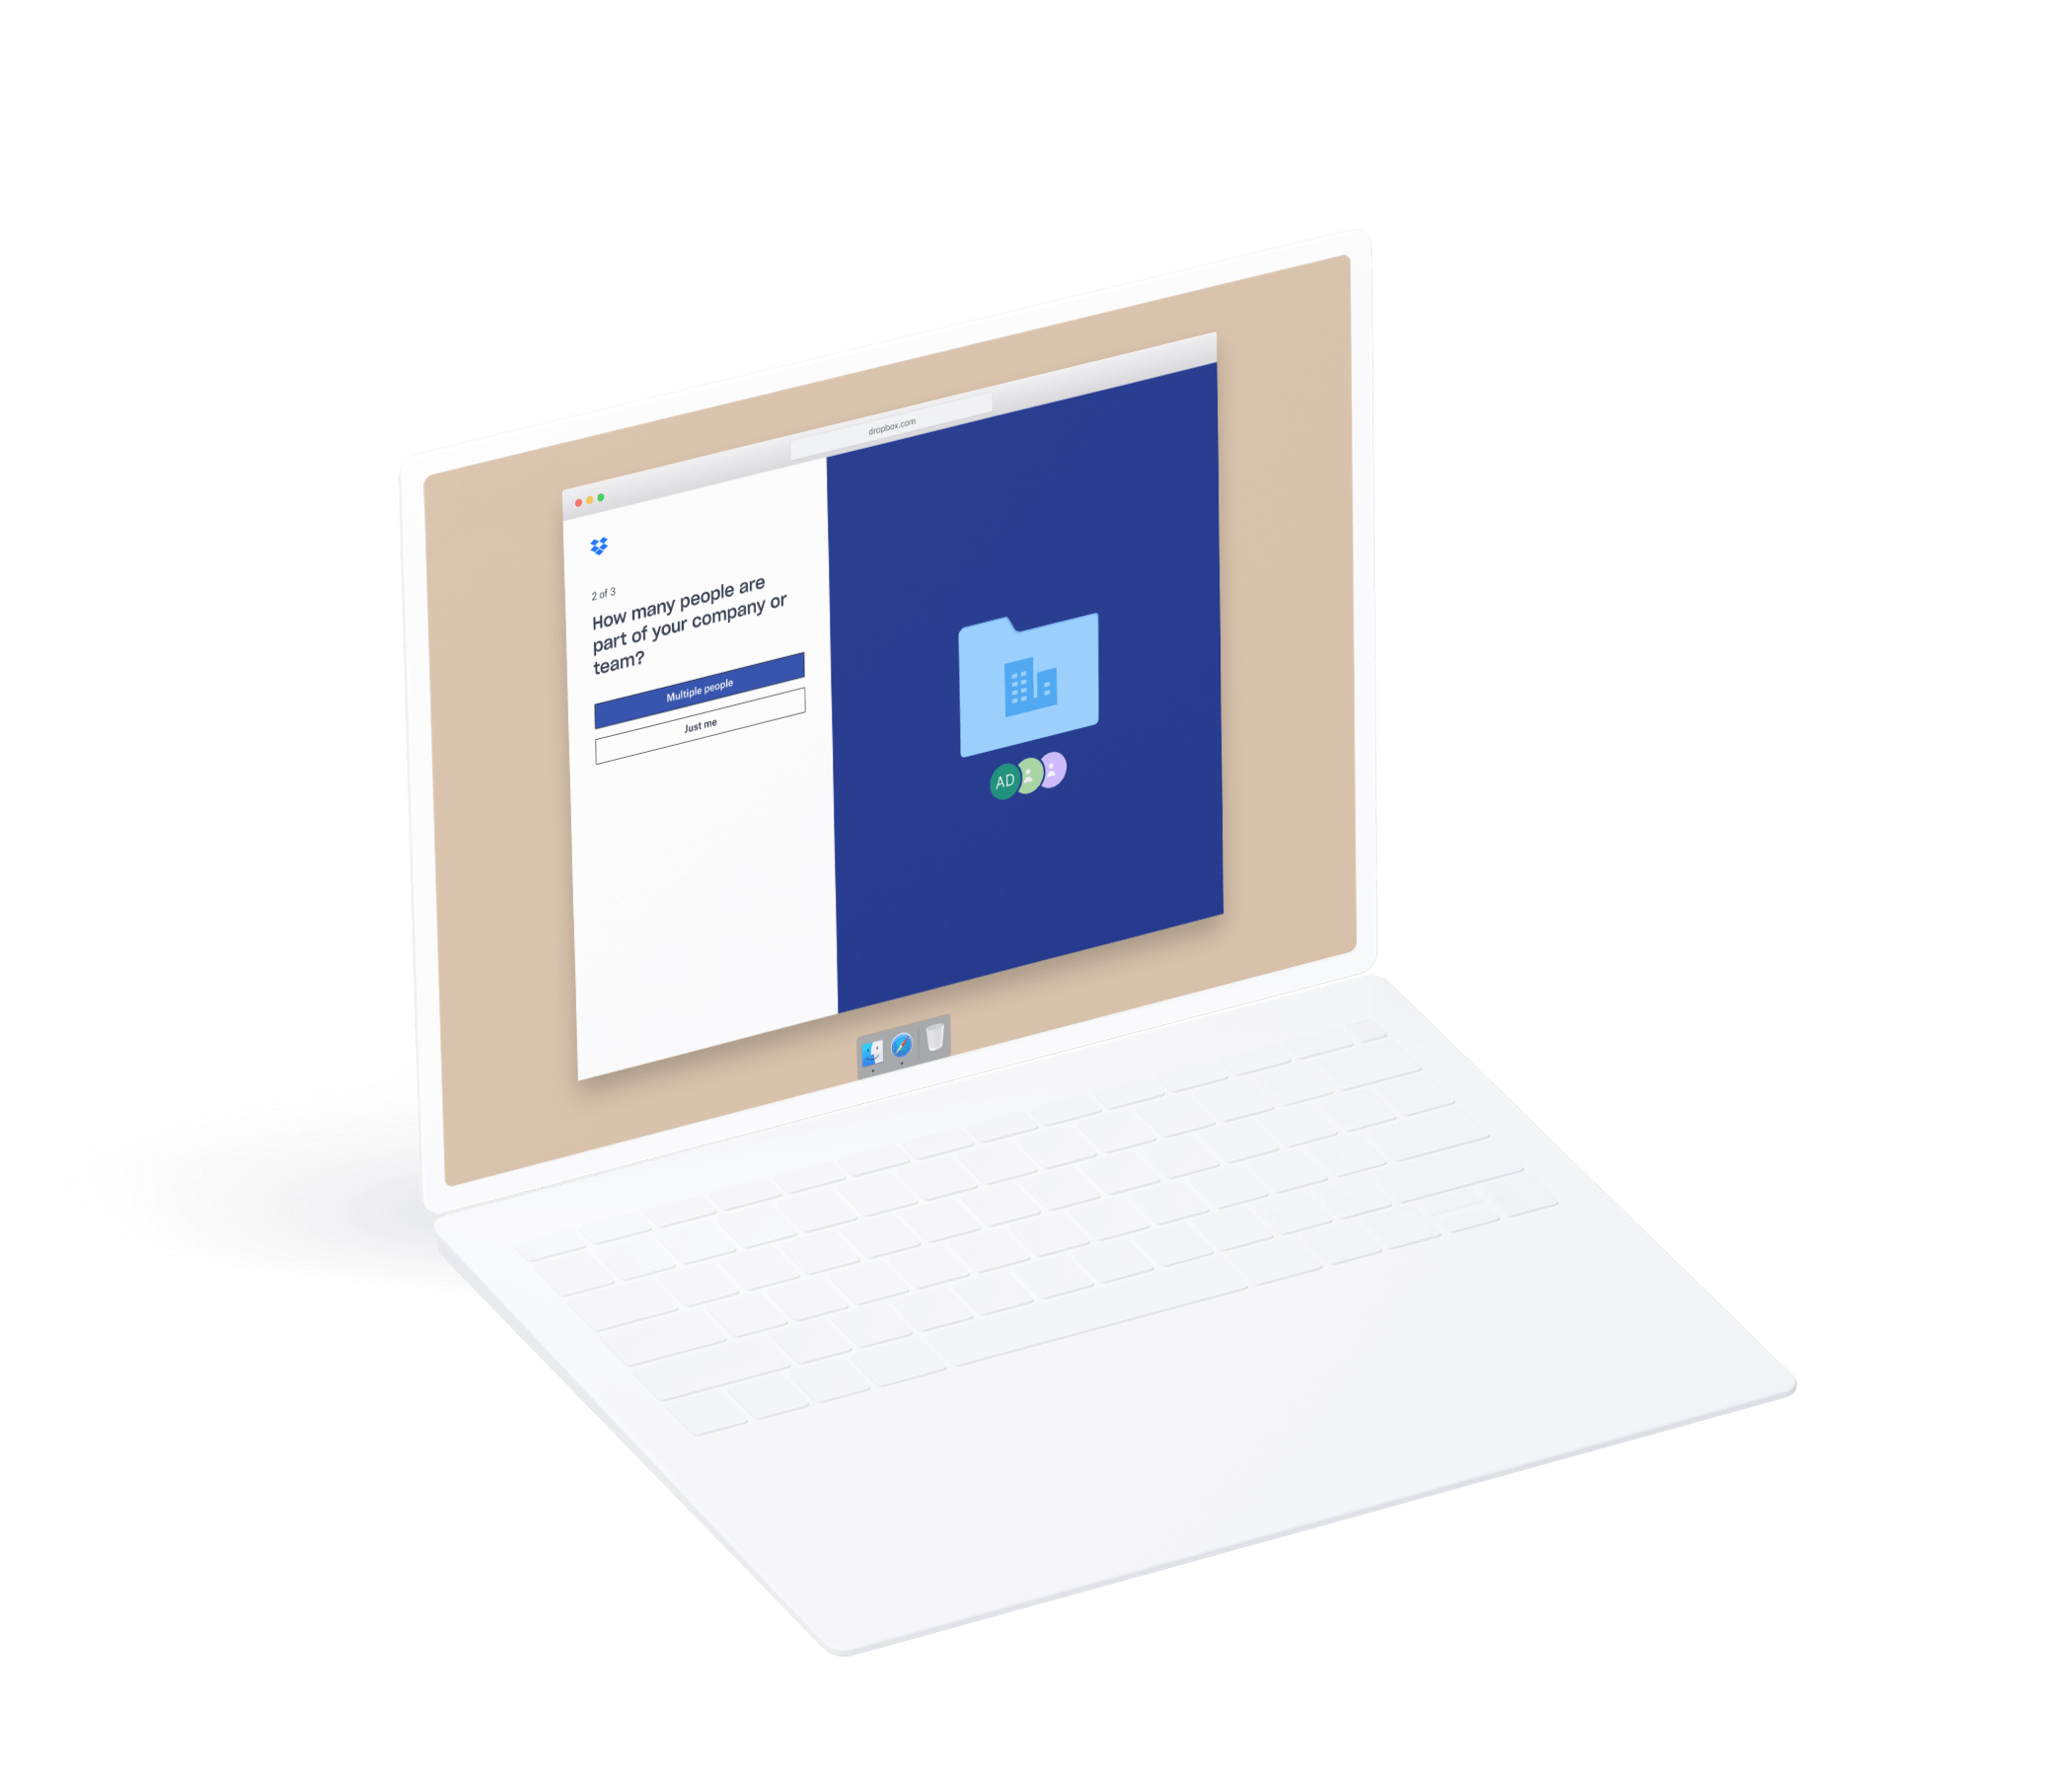 Laptop mockup showing the Dropbox Onboarding flow